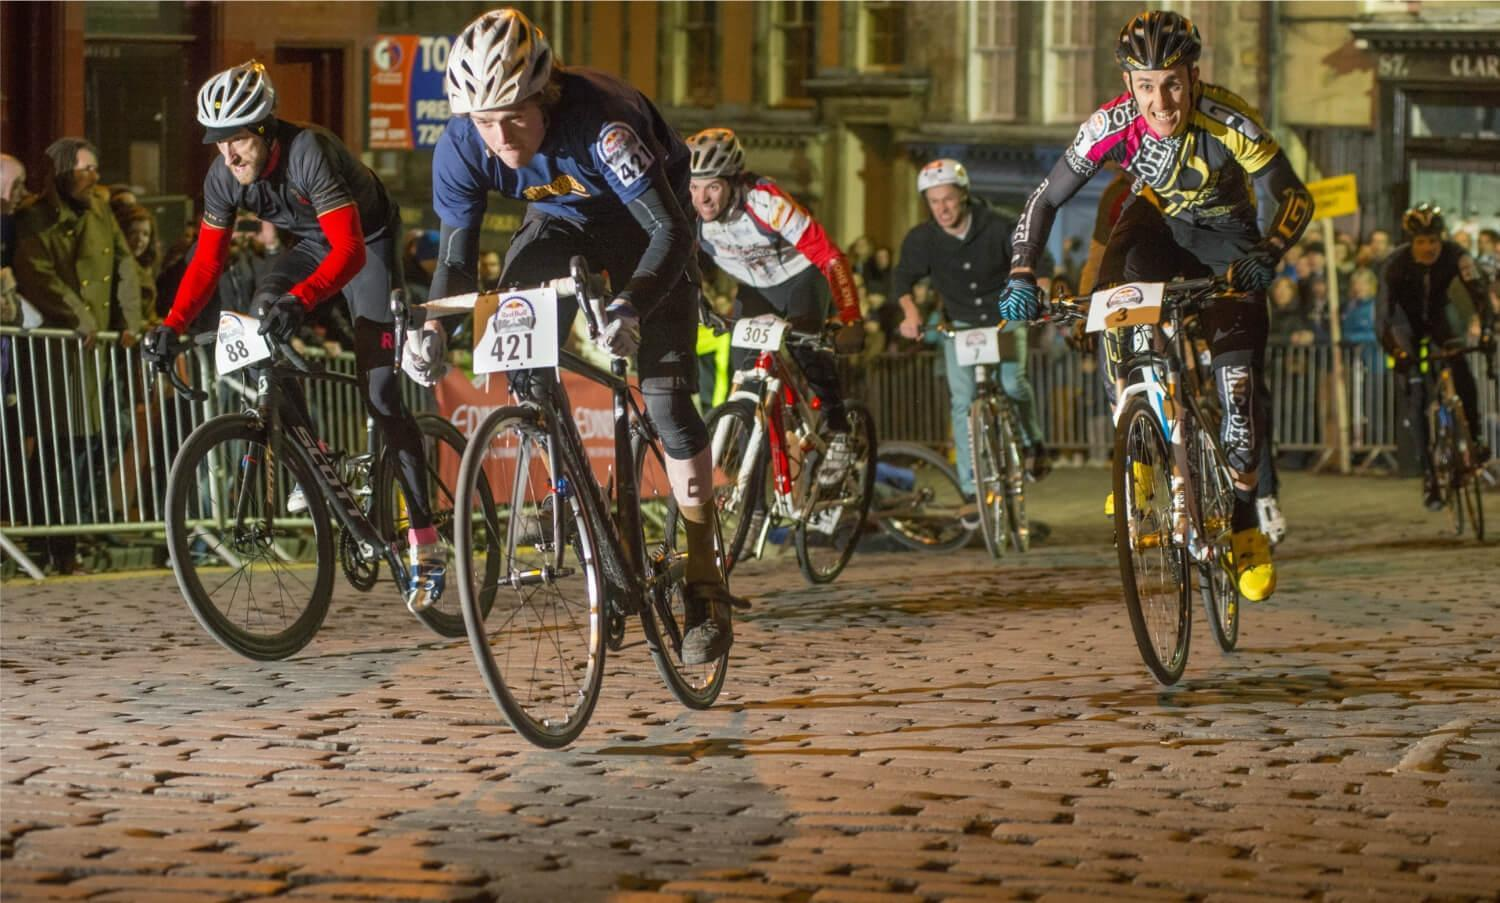 Participants of the Red Bull Hill Chasers event on Victoria Street.